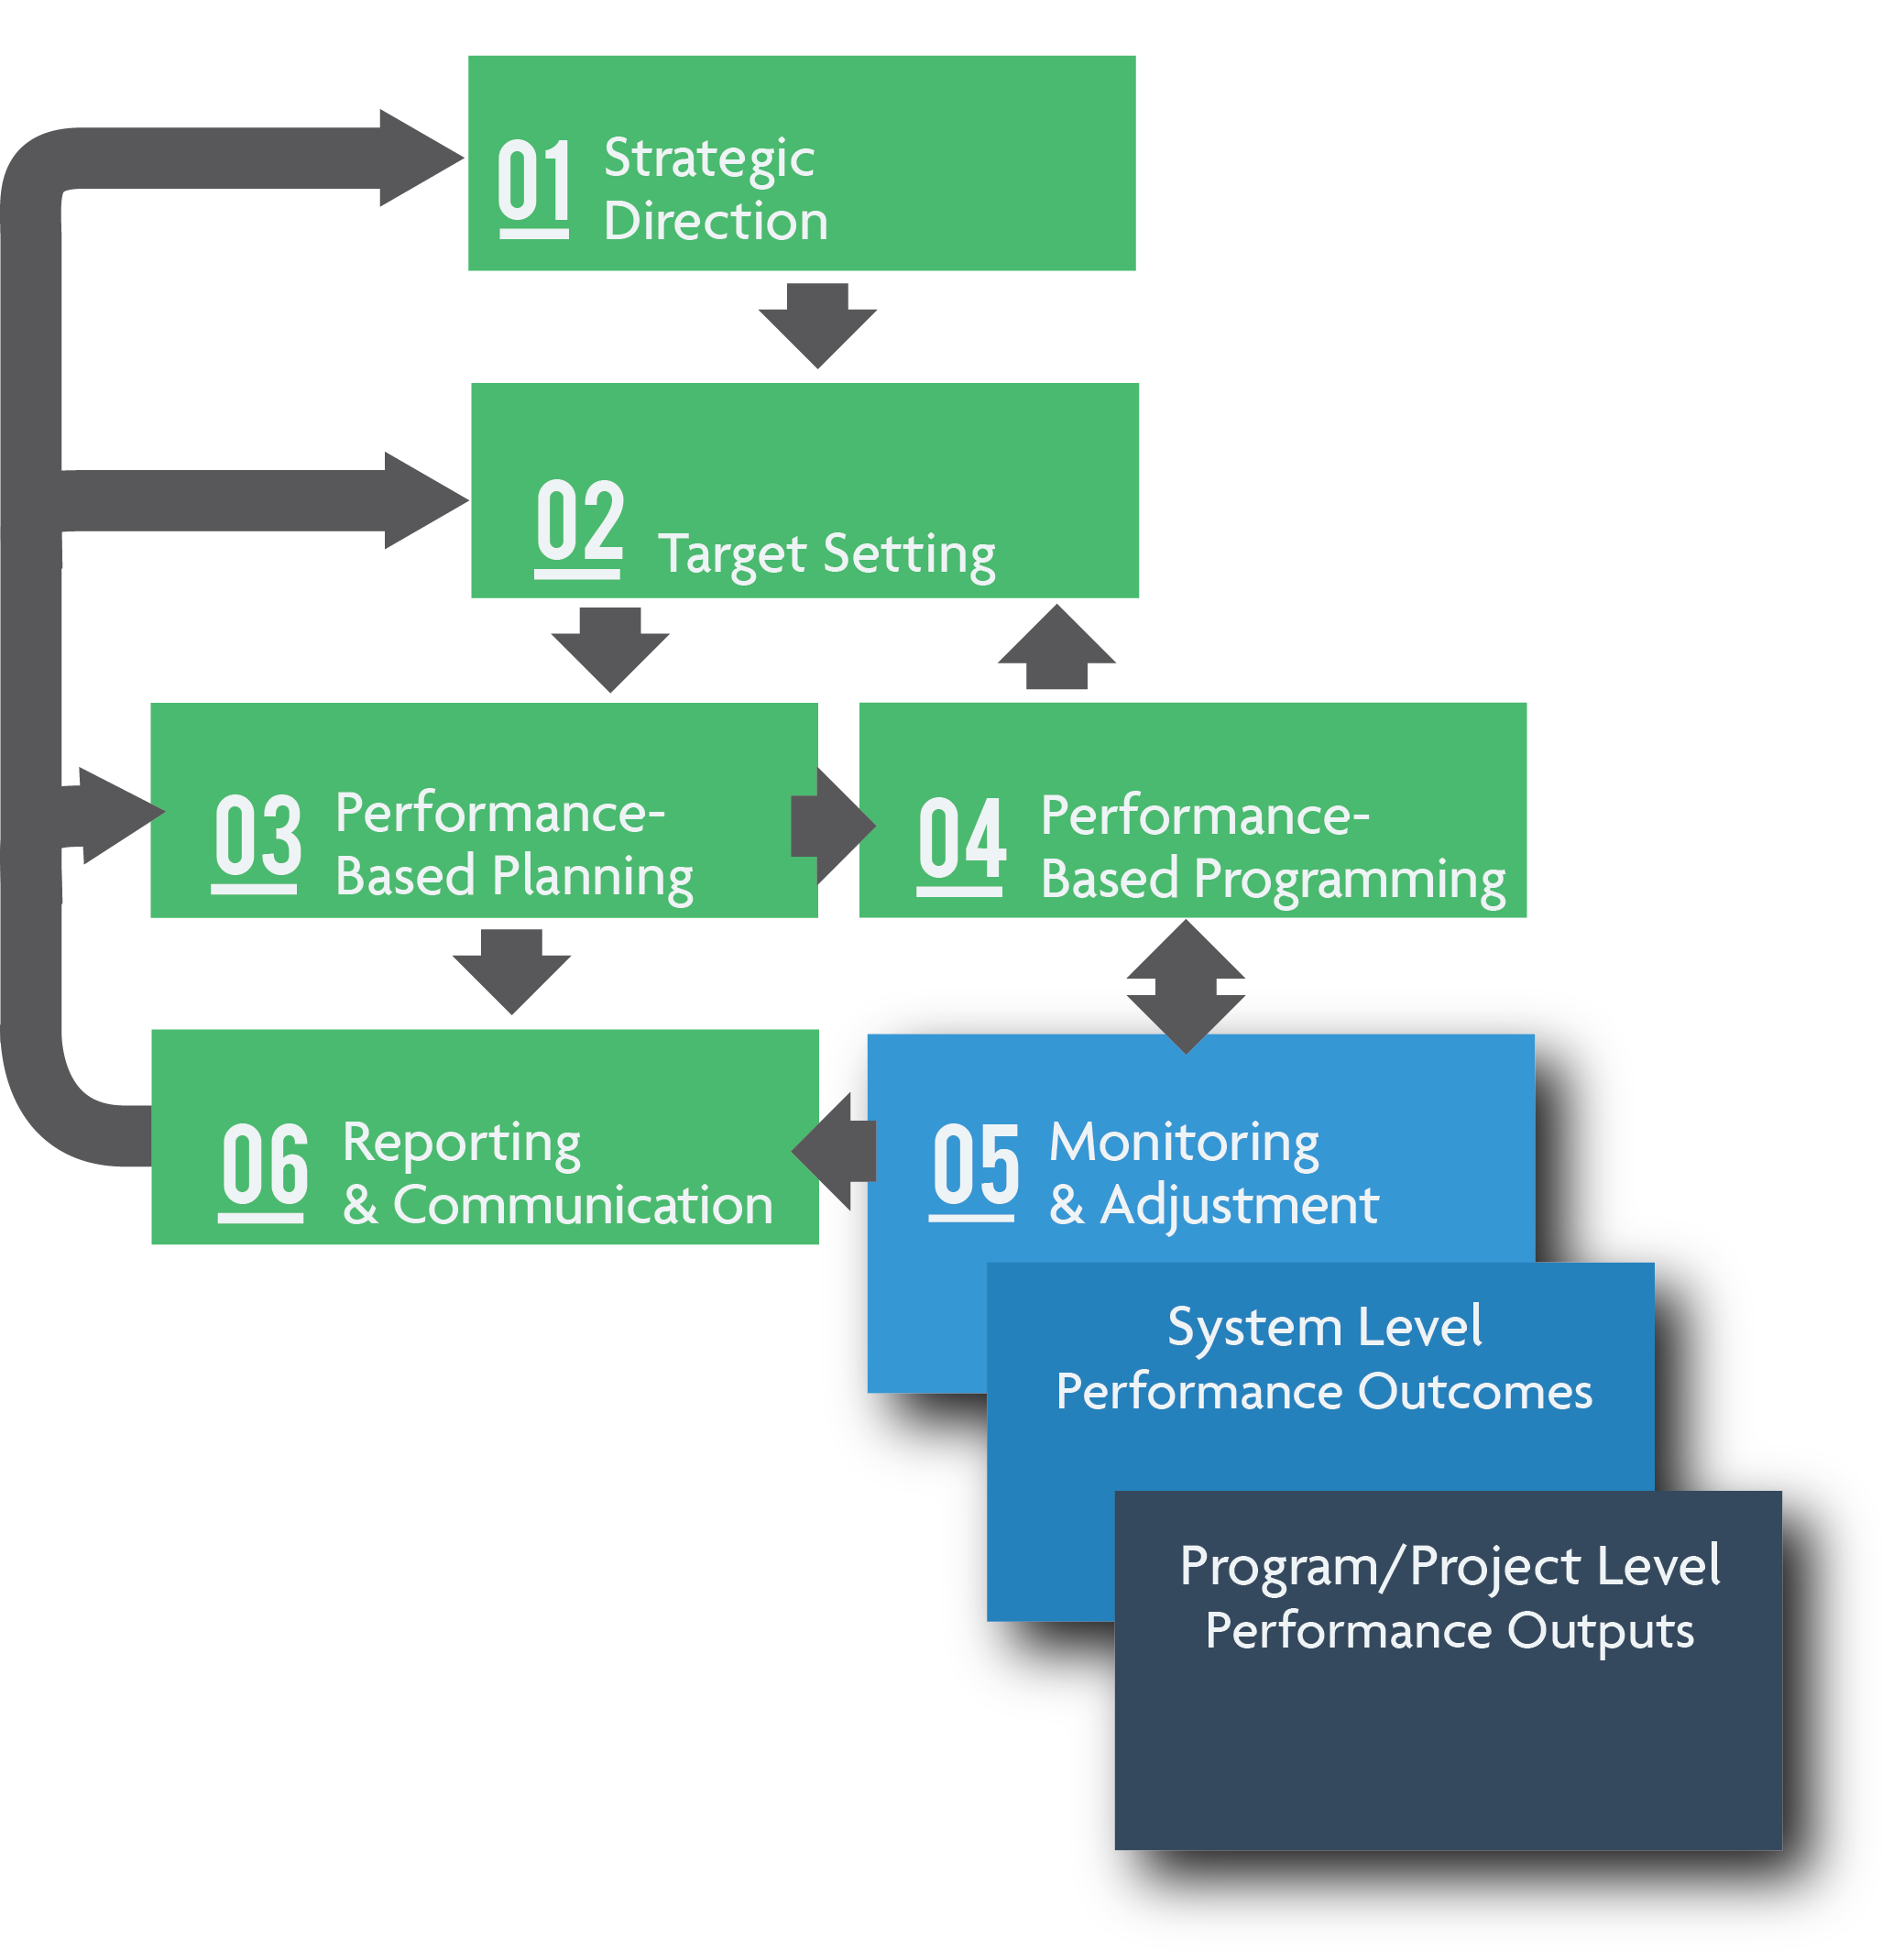 Flow chart showing Program/Project Level Monitioring (outputs) nested within System Level Monitoring (outcomes), and the relationships between Components 01-04 and Component 06.